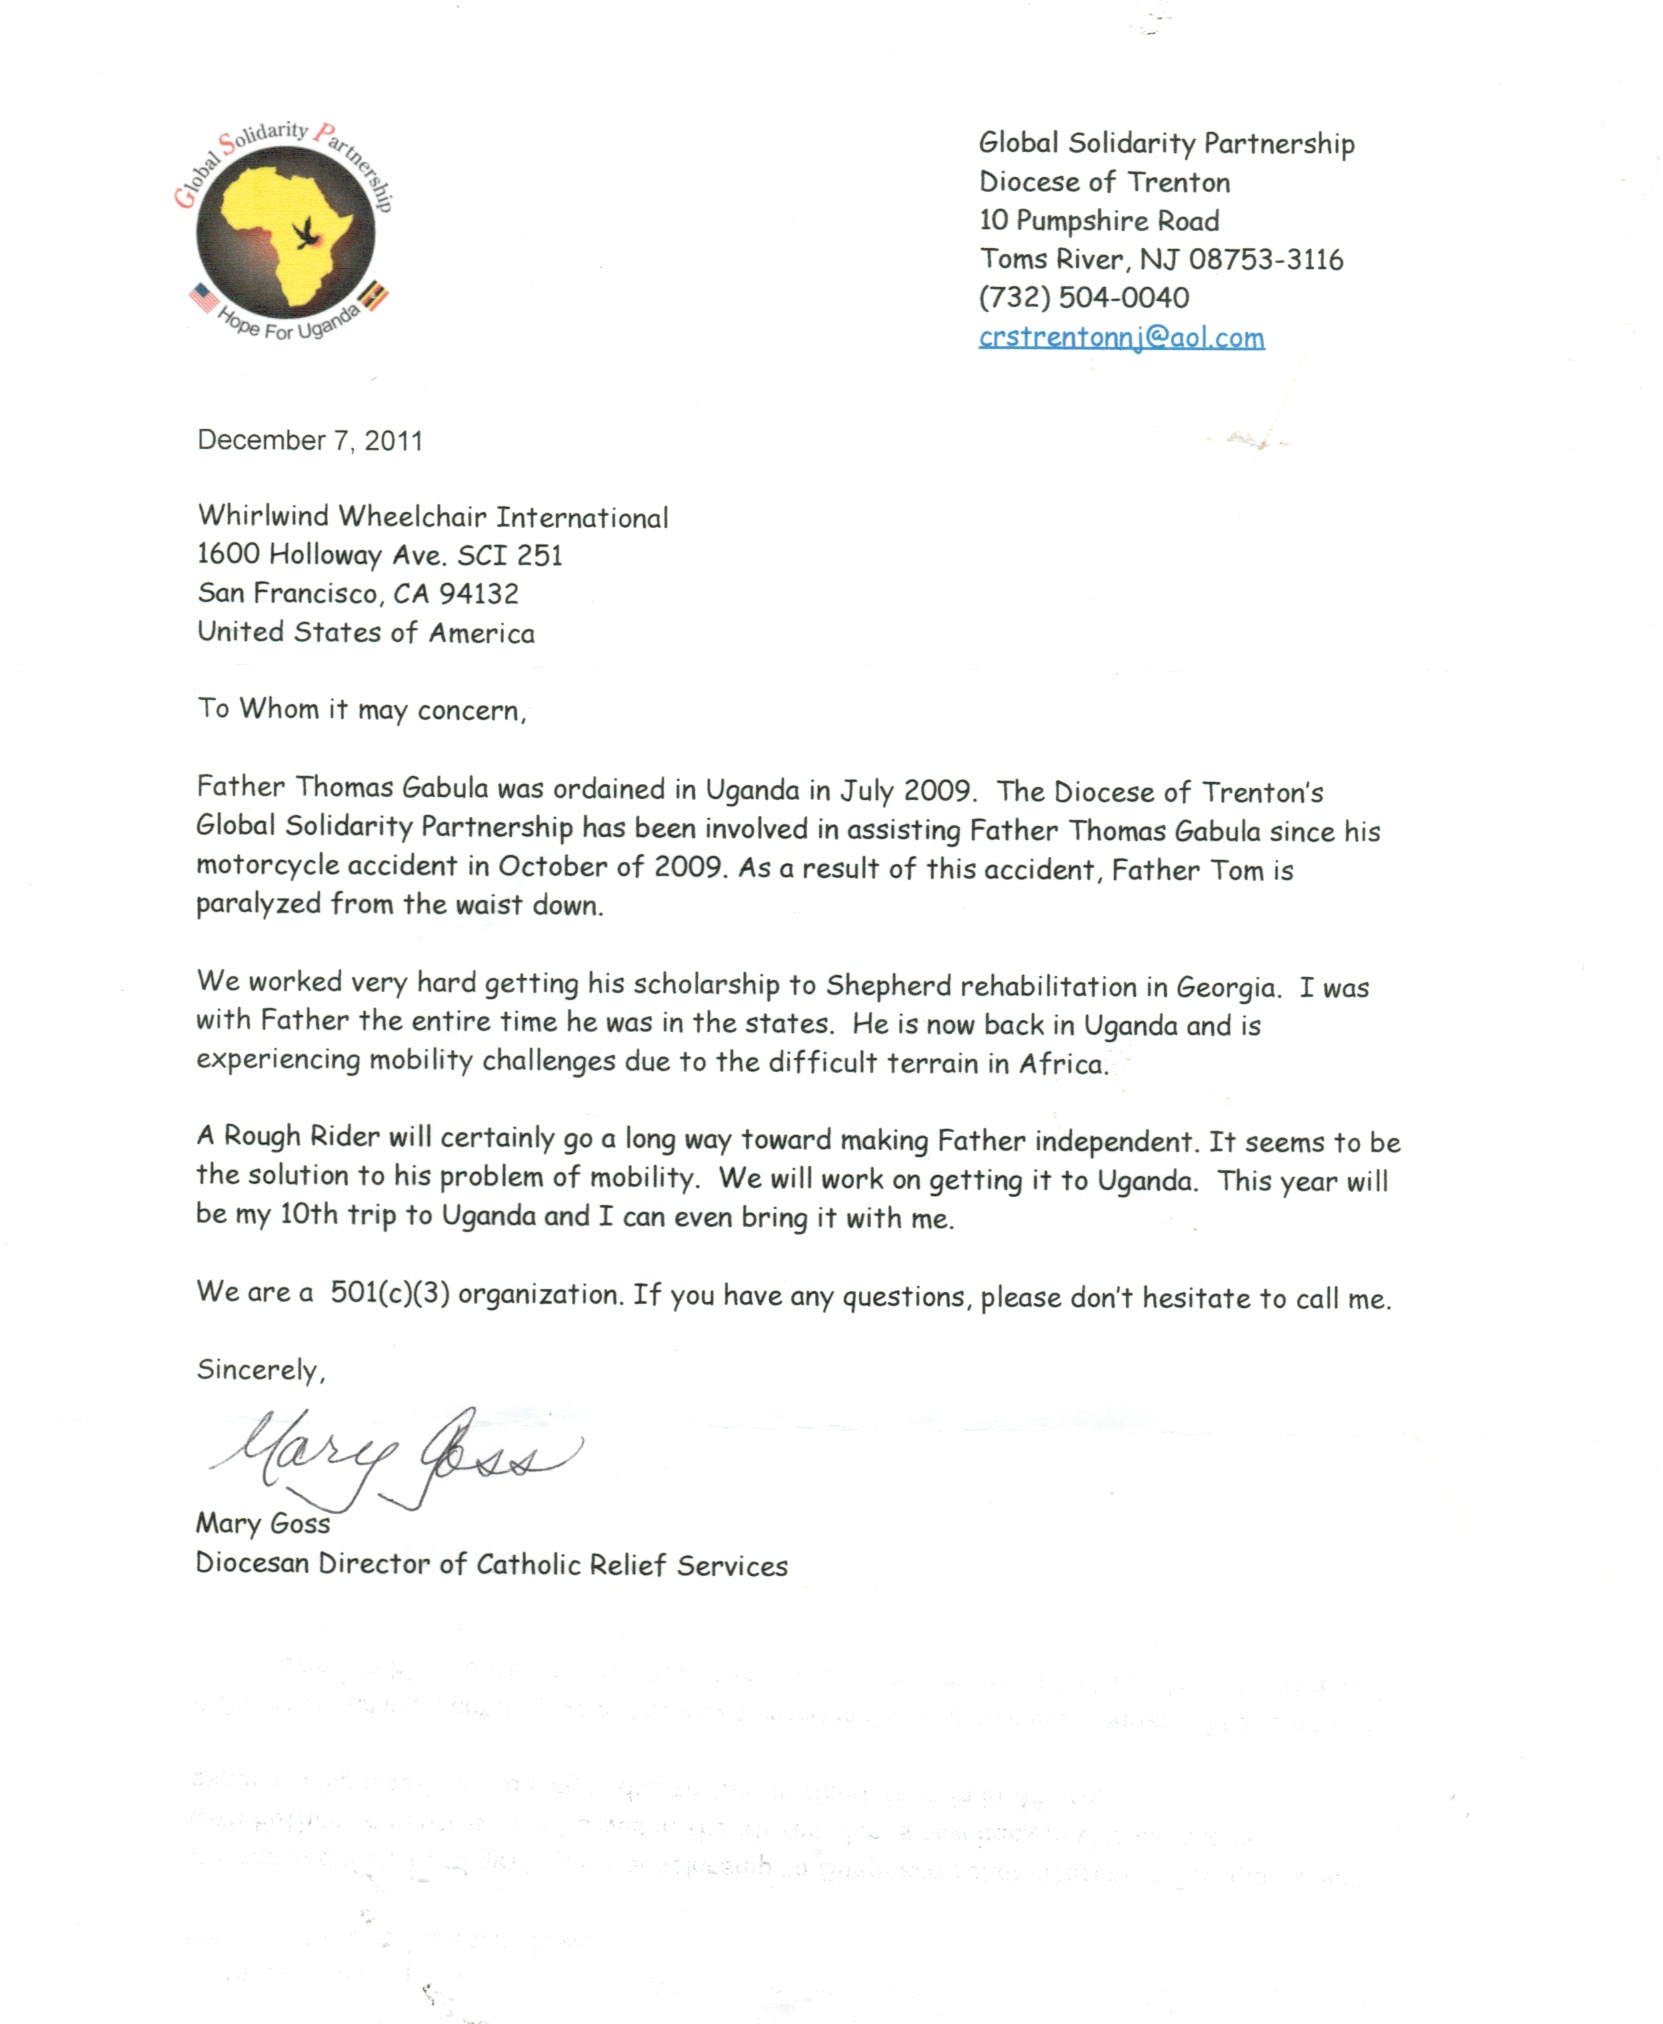 Missionary Support Letter Template - How to Write A Support Letter for A Mission Trip Choice Image